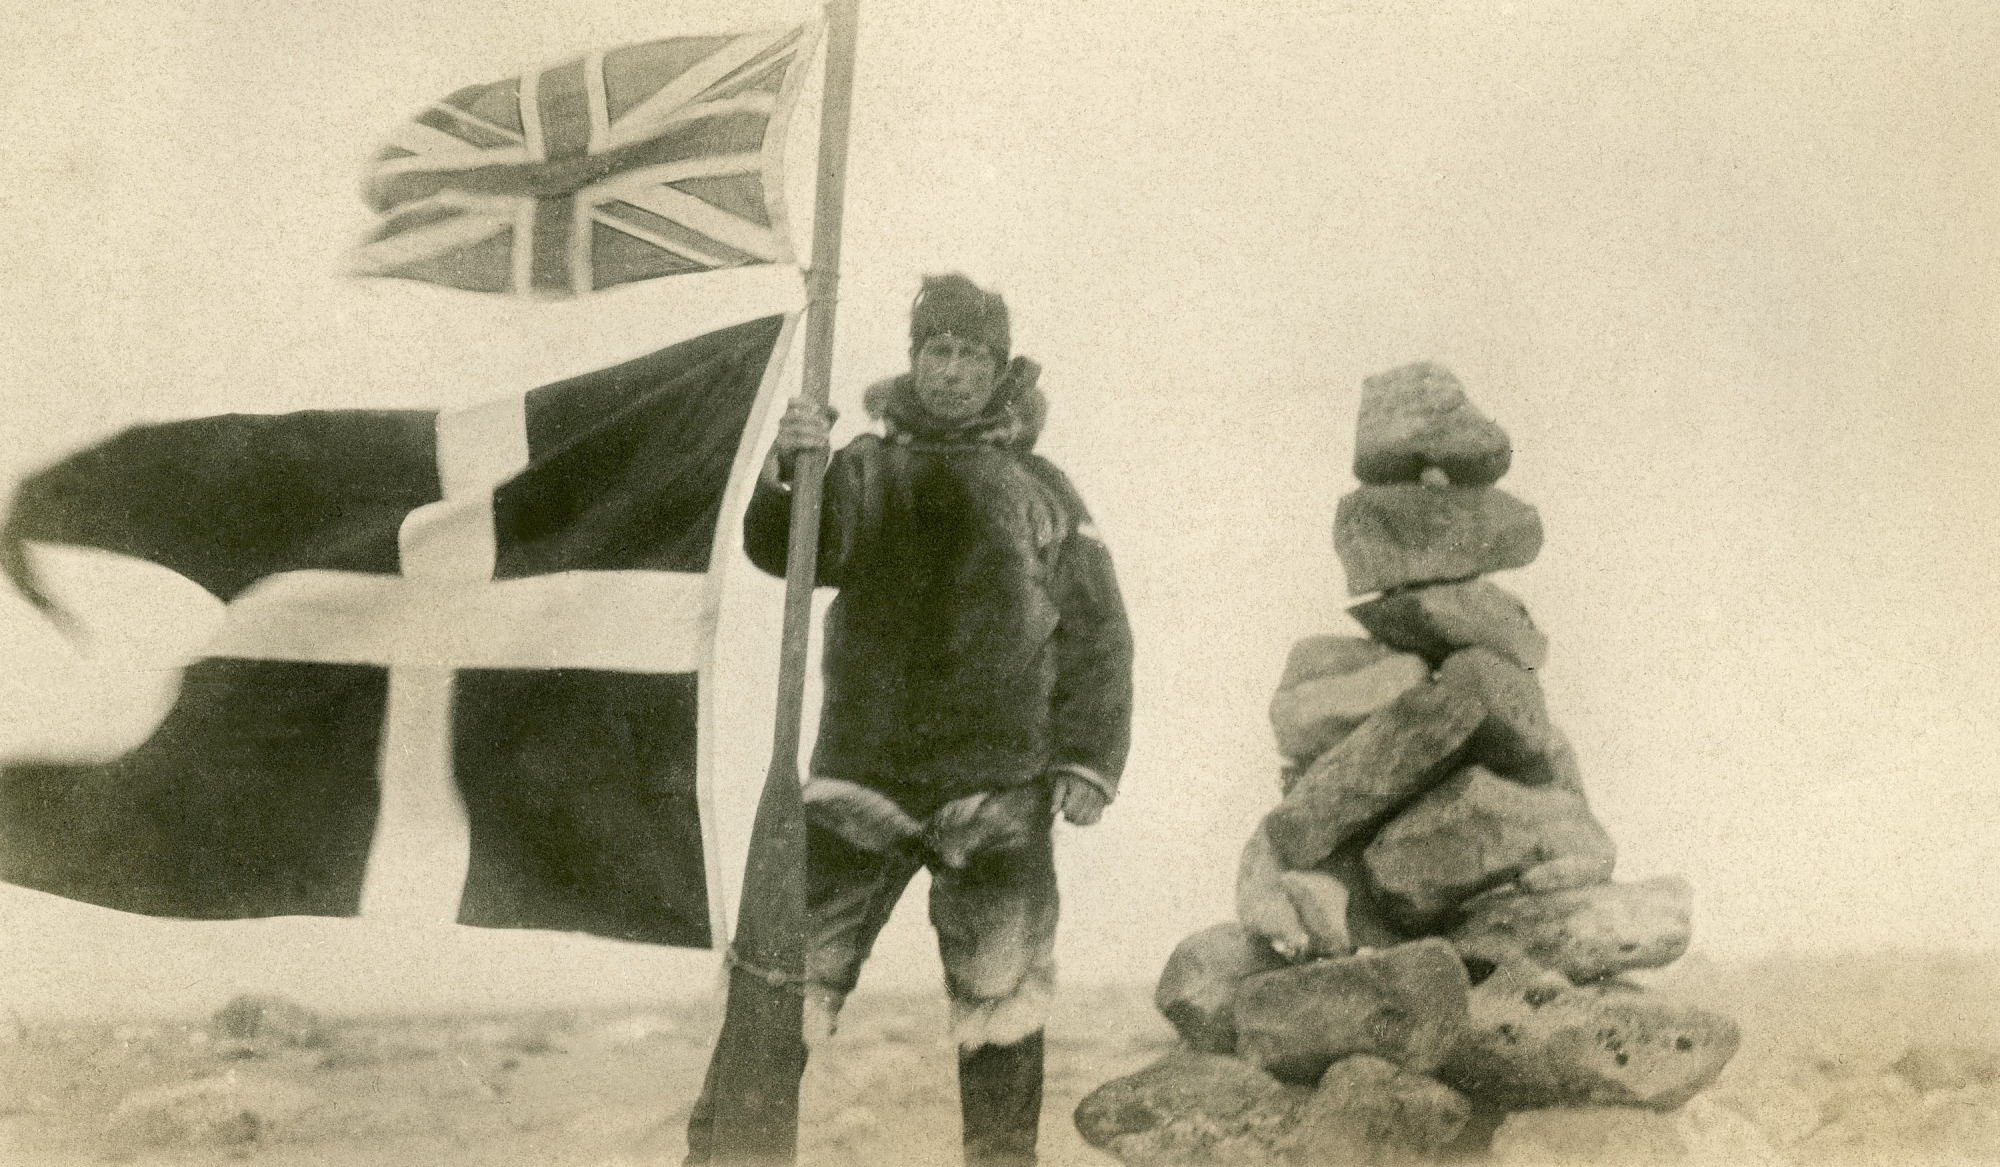 Burying Members of the Franklin Expedition at Starvation Cove